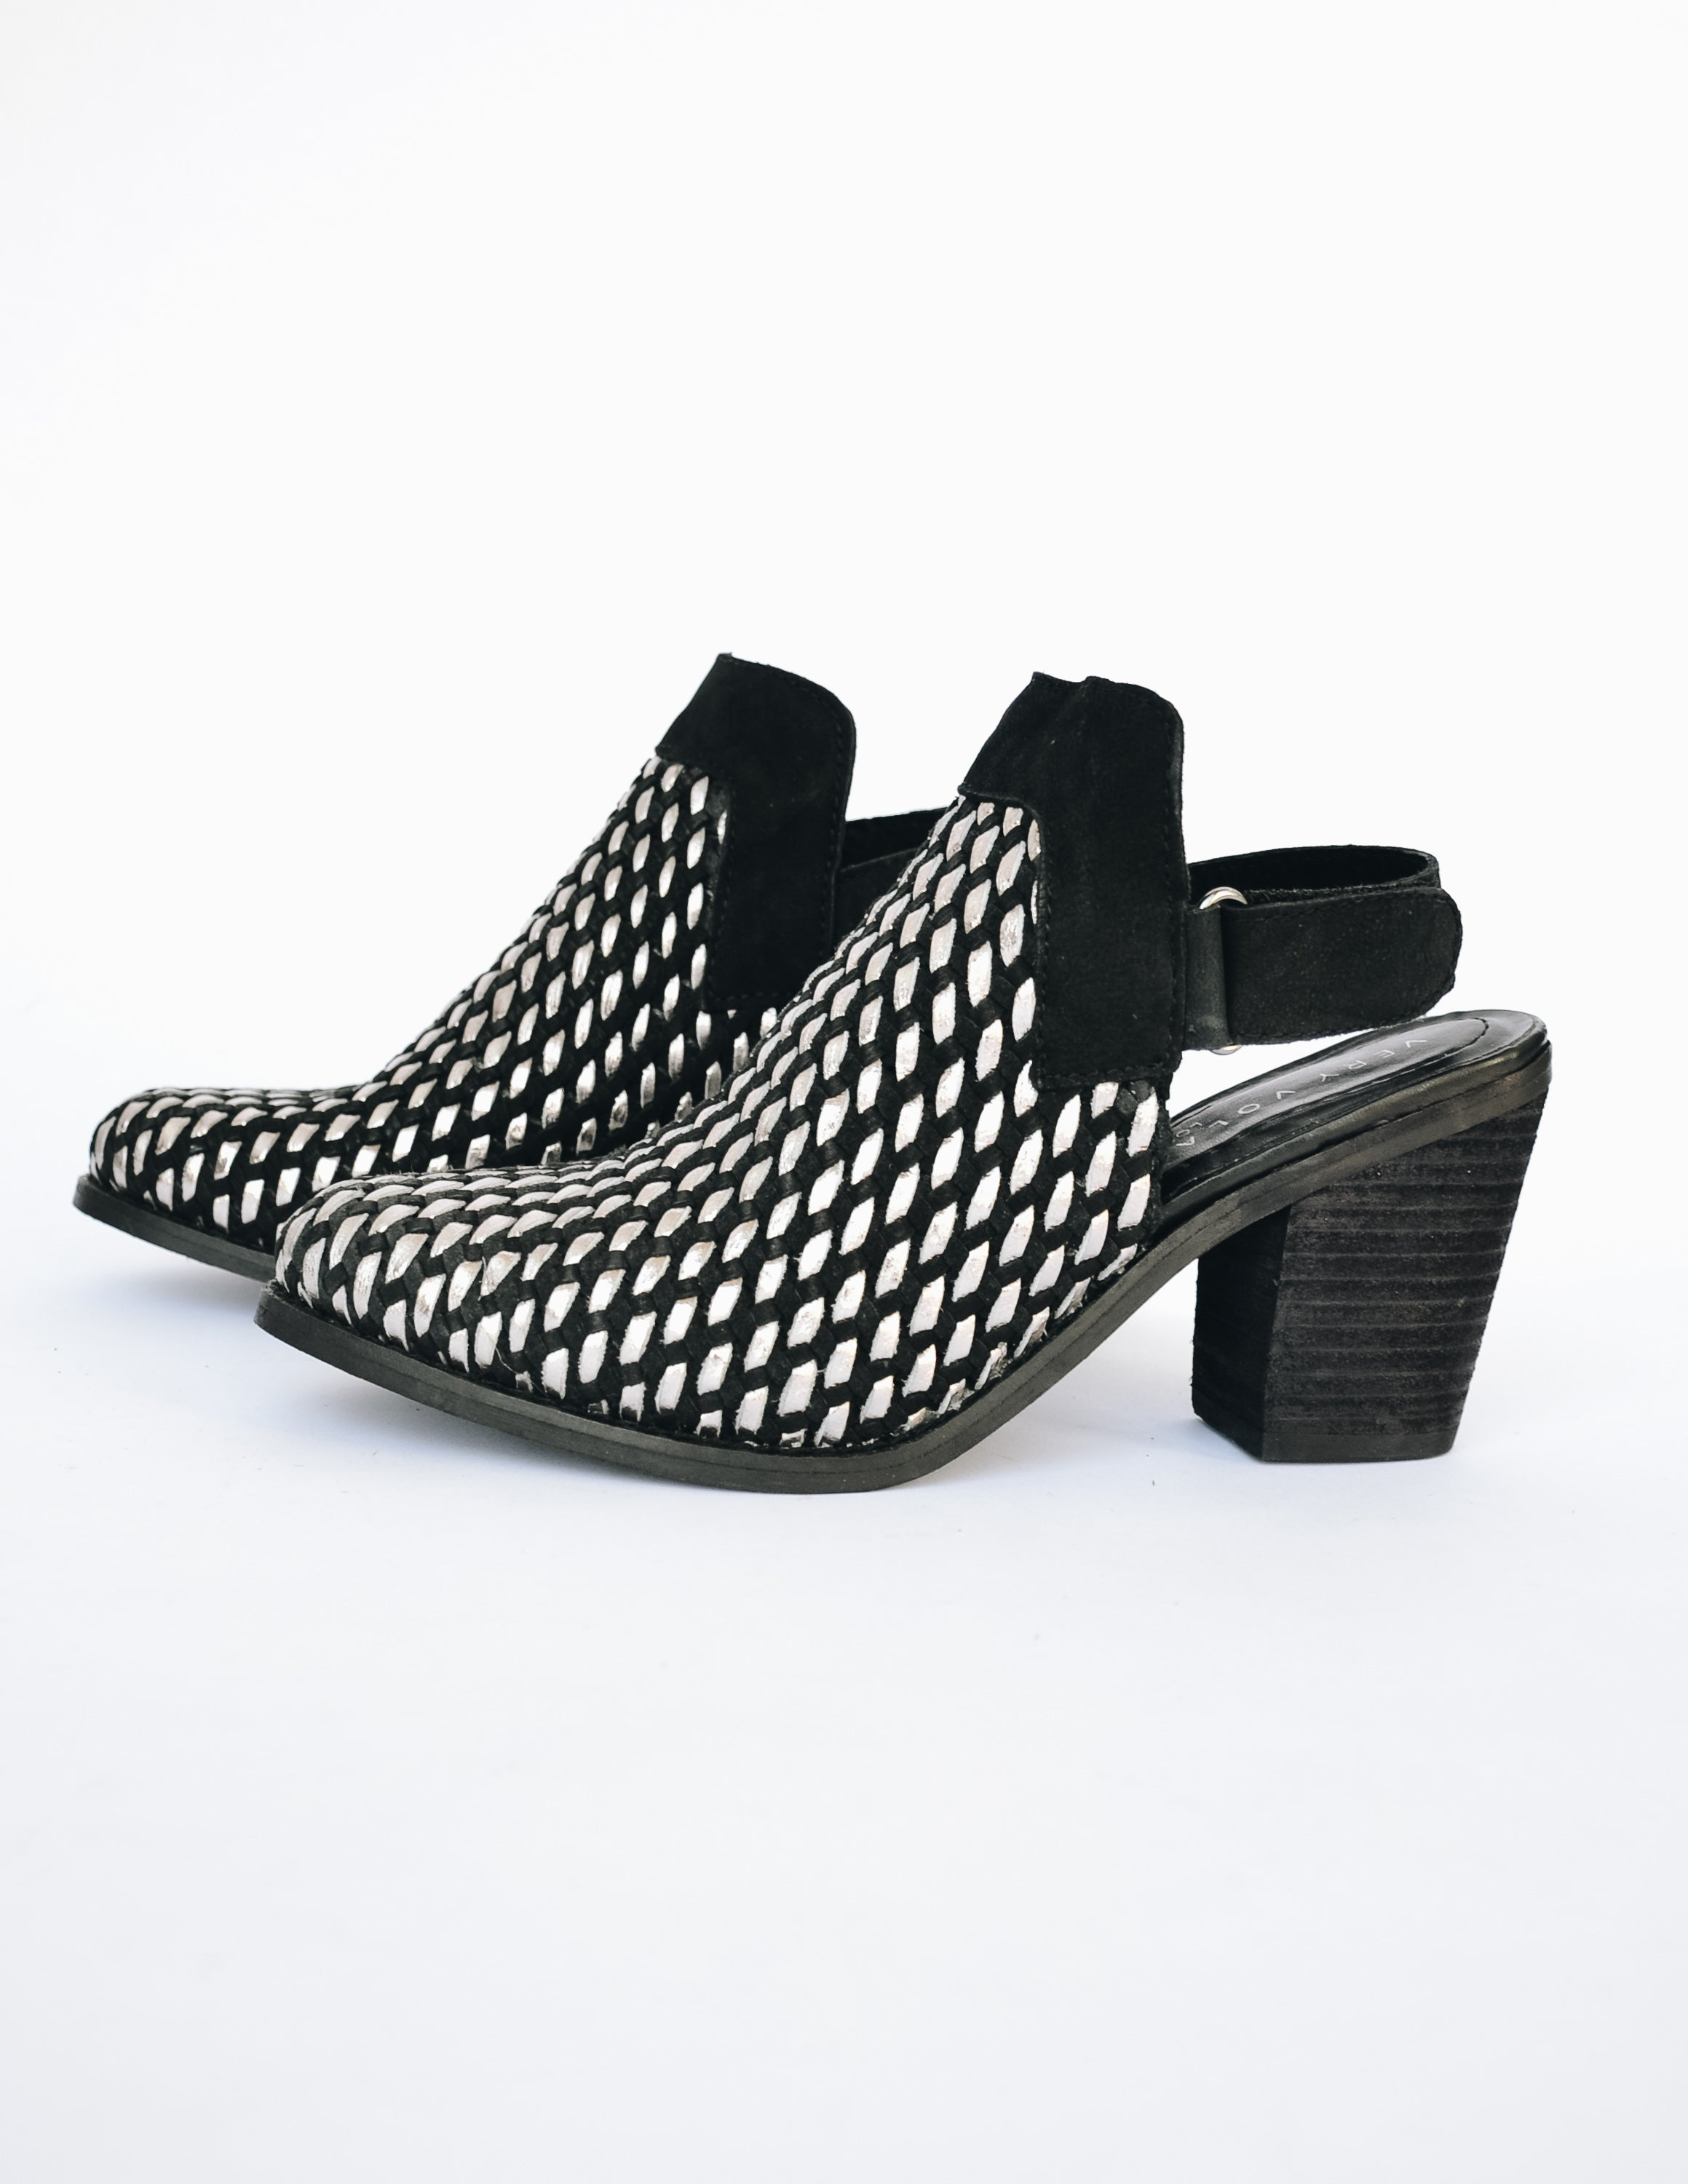 Black and silver woven Sandara heel with black velcro back strap on white background - Elle Bleu